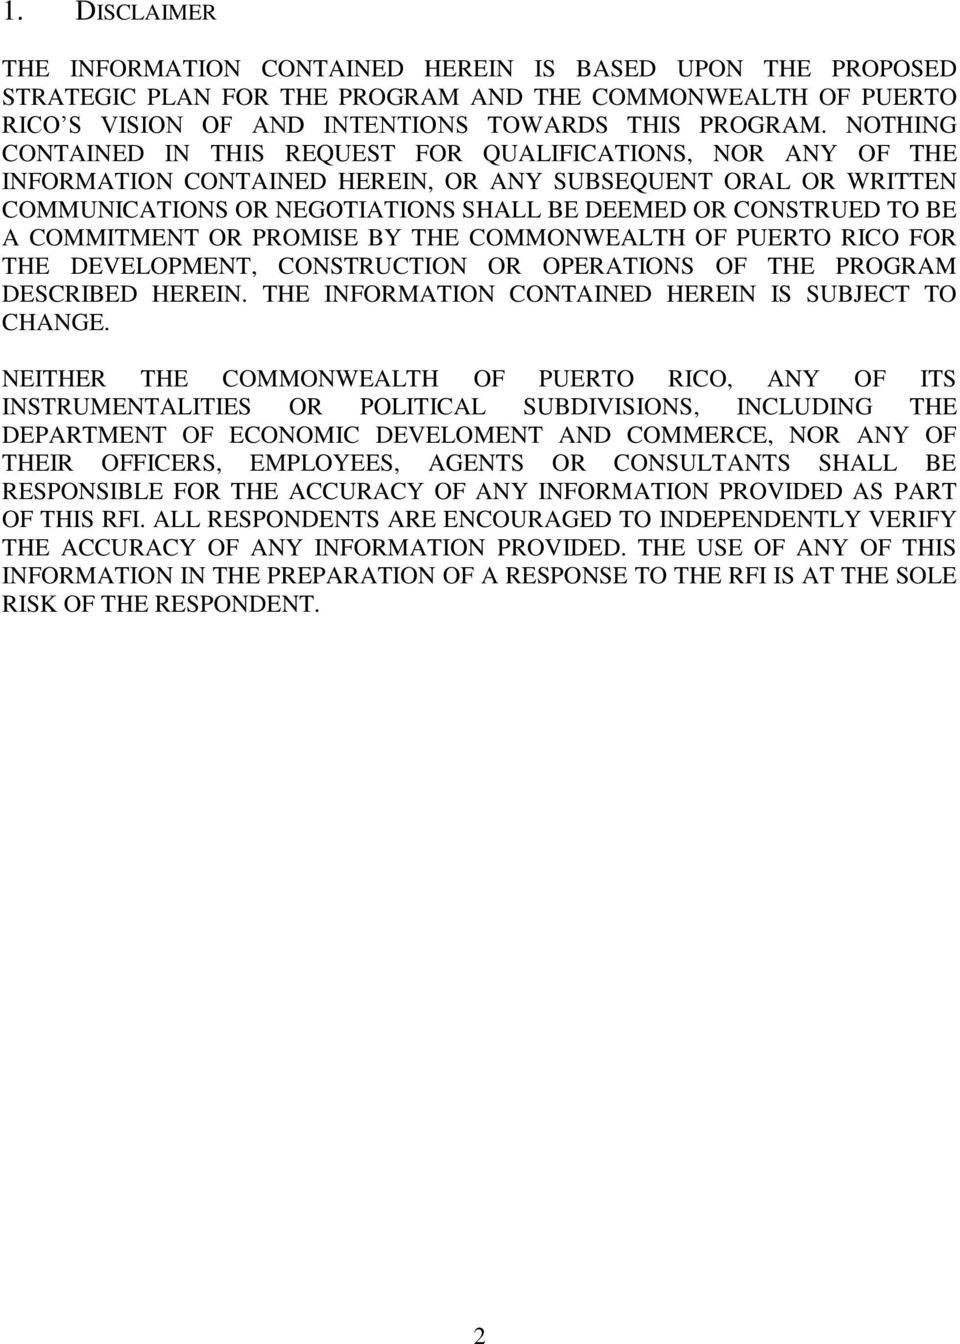 A COMMITMENT OR PROMISE BY THE COMMONWEALTH OF PUERTO RICO FOR THE DEVELOPMENT, CONSTRUCTION OR OPERATIONS OF THE PROGRAM DESCRIBED HEREIN. THE INFORMATION CONTAINED HEREIN IS SUBJECT TO CHANGE.